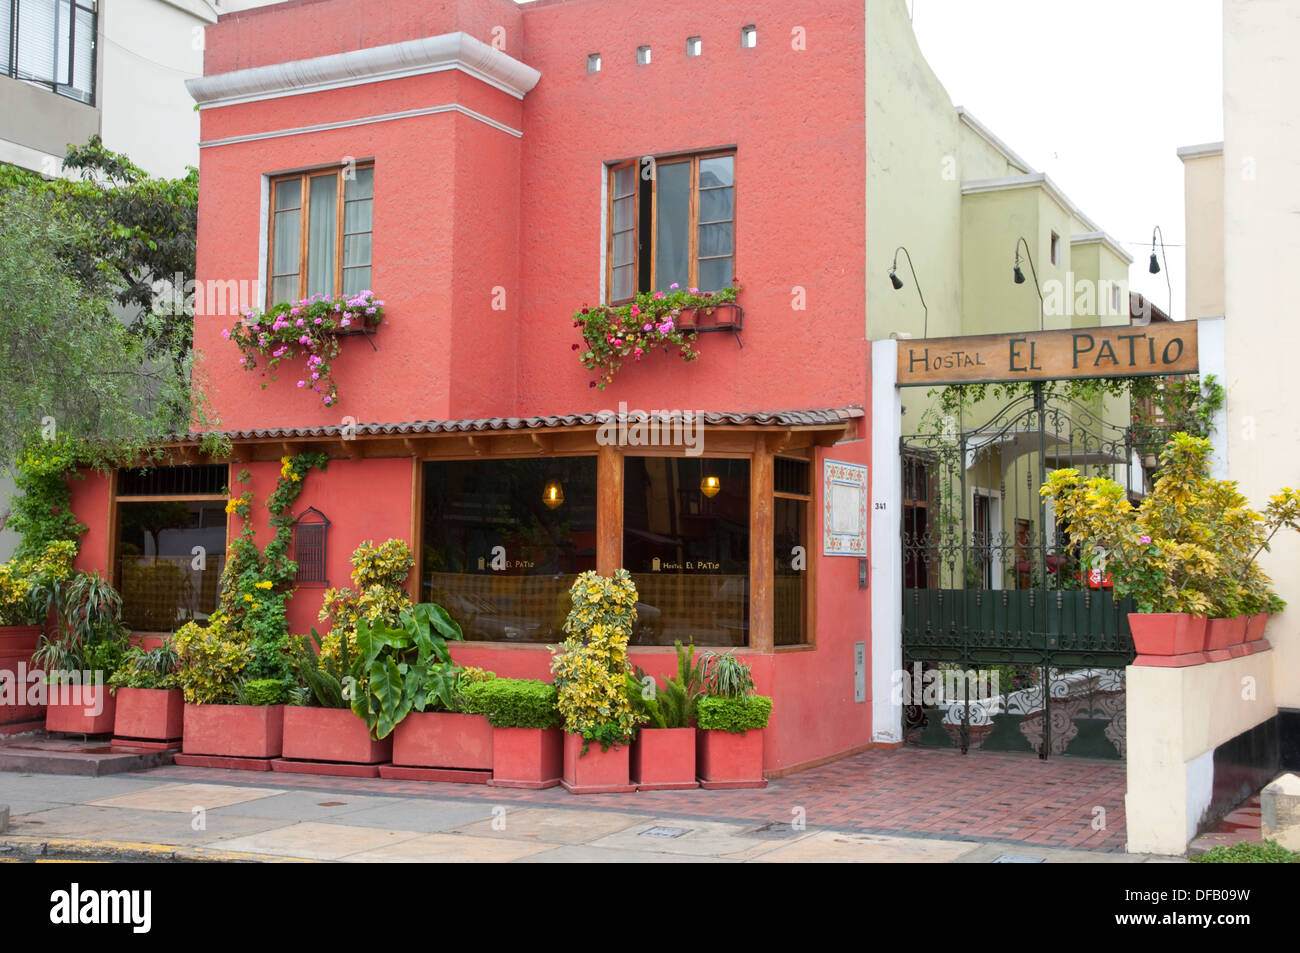 https www alamy com the exterior of the el patio hostal in miraflores lima peru south image61092693 html